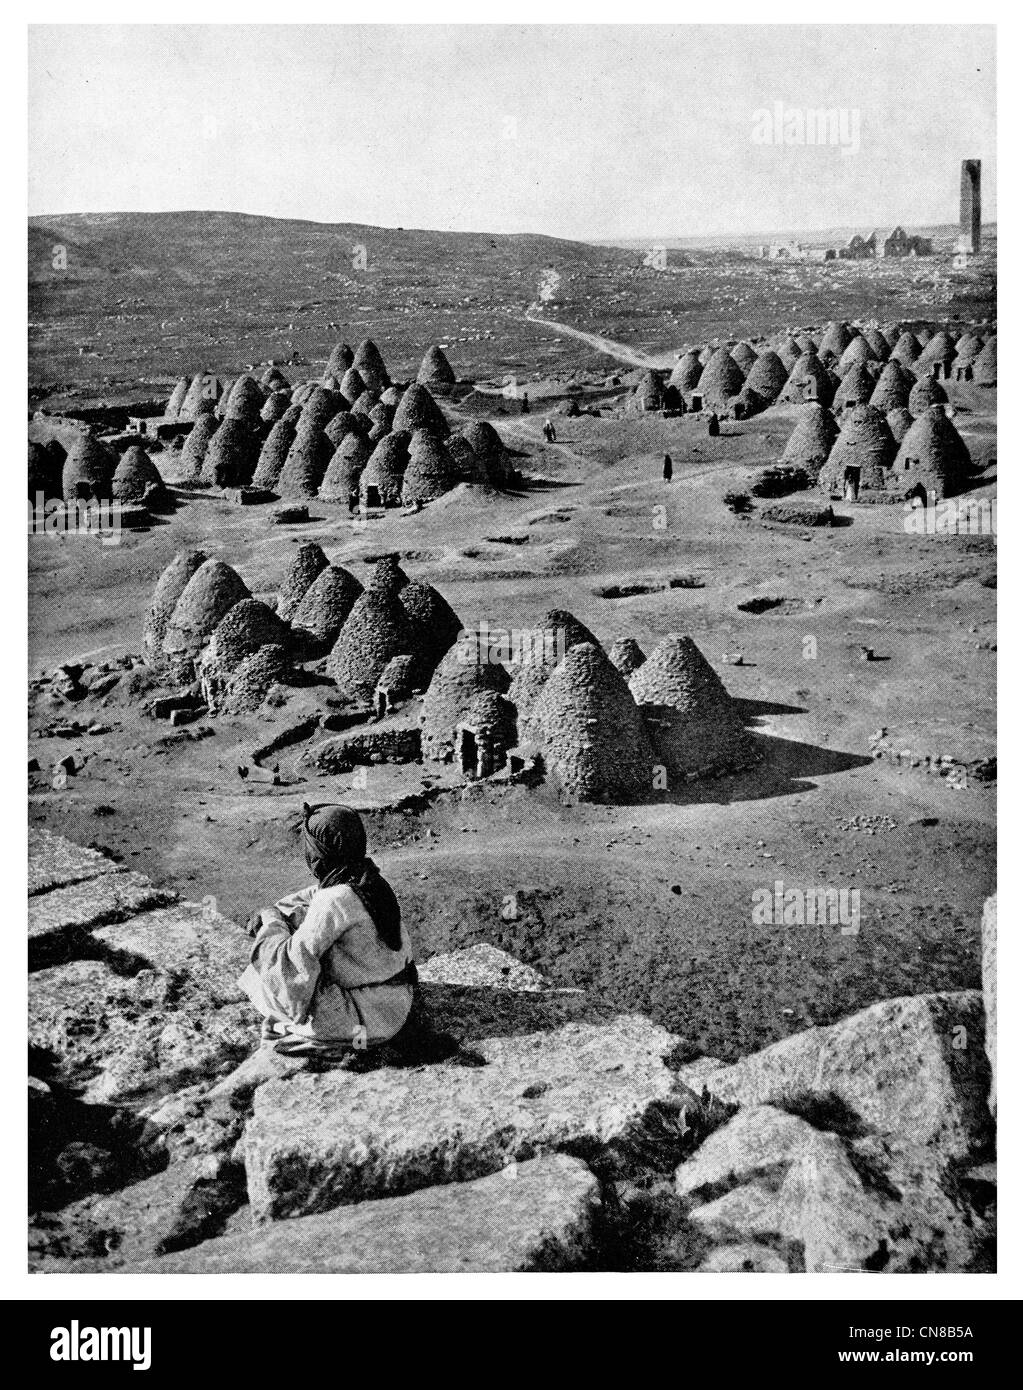 First published 1914  Harran  Tribes Bee Hive Village Turkey - Stock Image